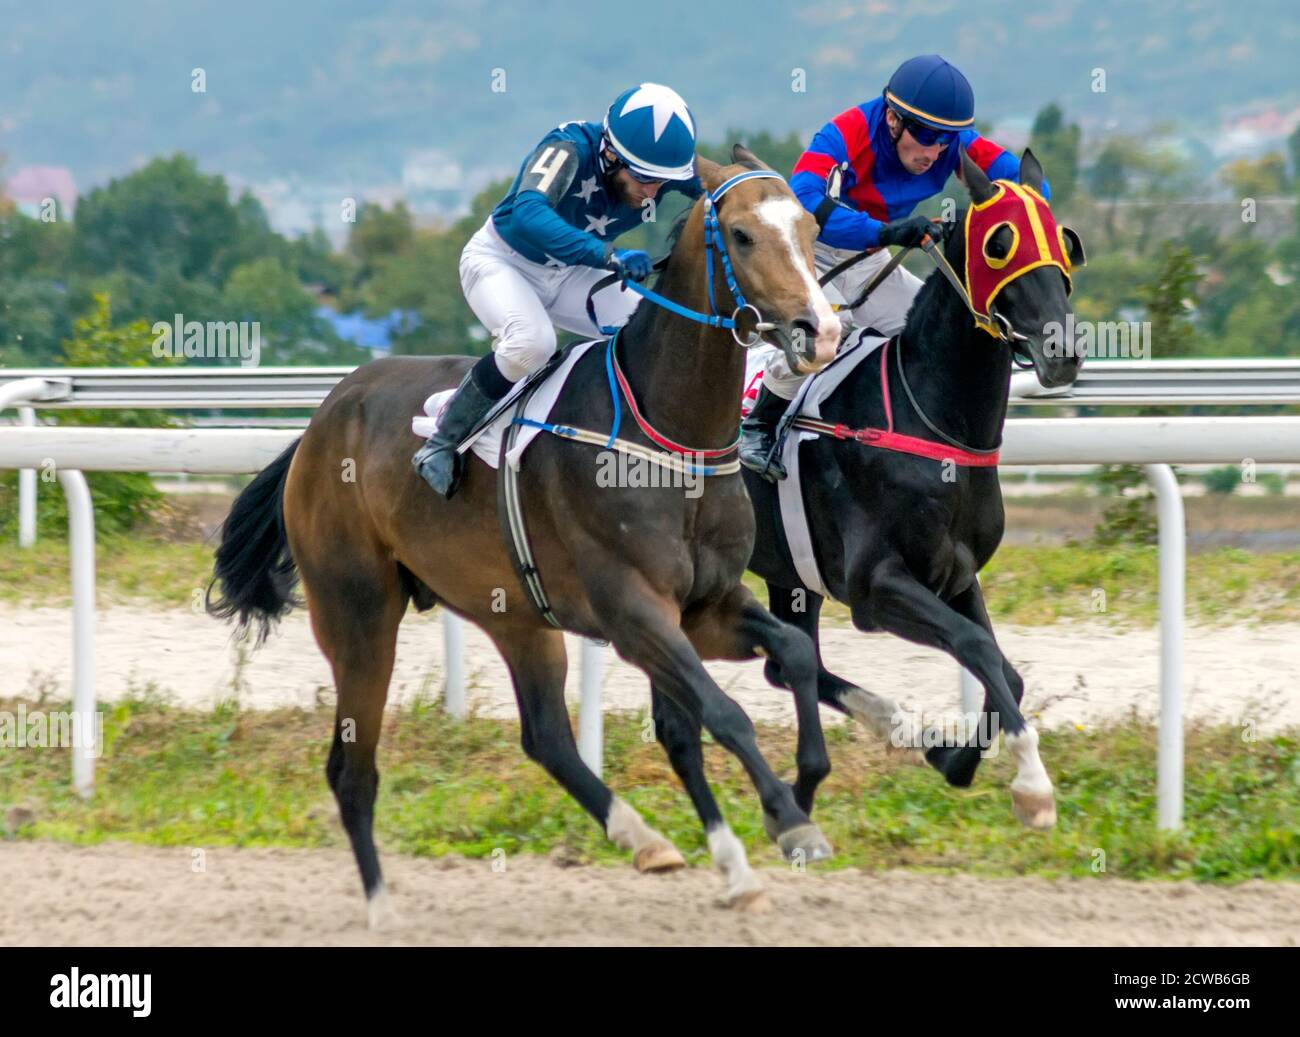 Arabian Horse Racing High Resolution Stock Photography And Images Alamy